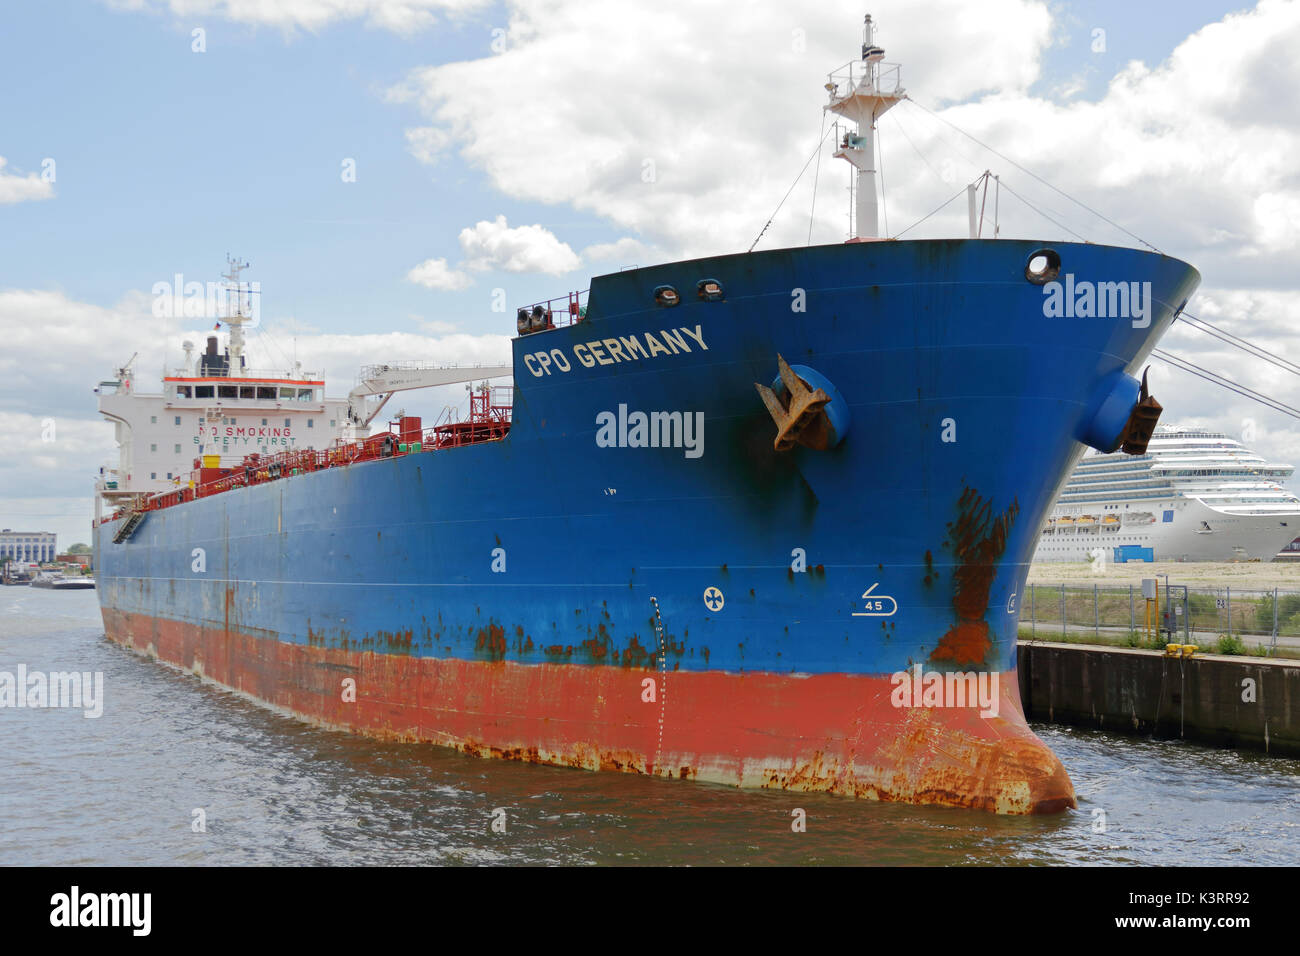 The tanker CPO Germany is located in the port of Hamburg. - Stock Image